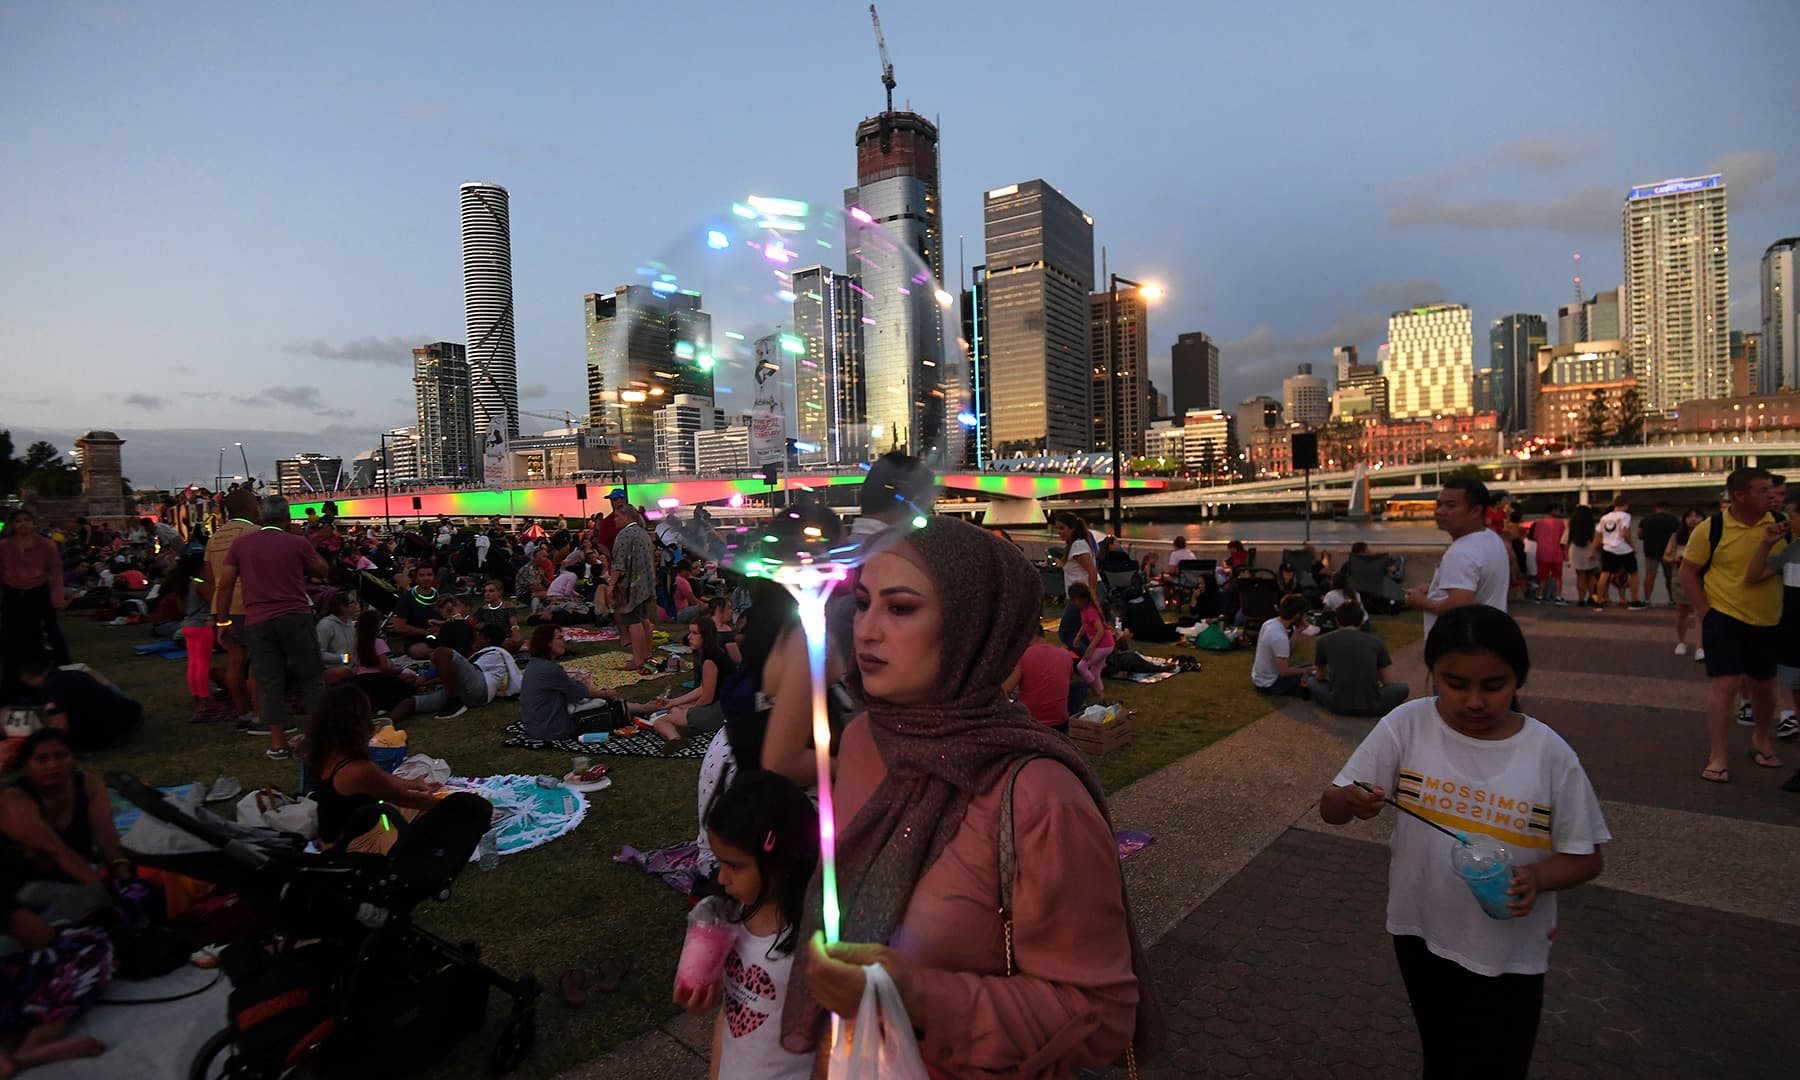 Crowds gather to watch New Year's Eve fireworks at South Bank in Brisbane, Australia, on Tuesday. — Reuters